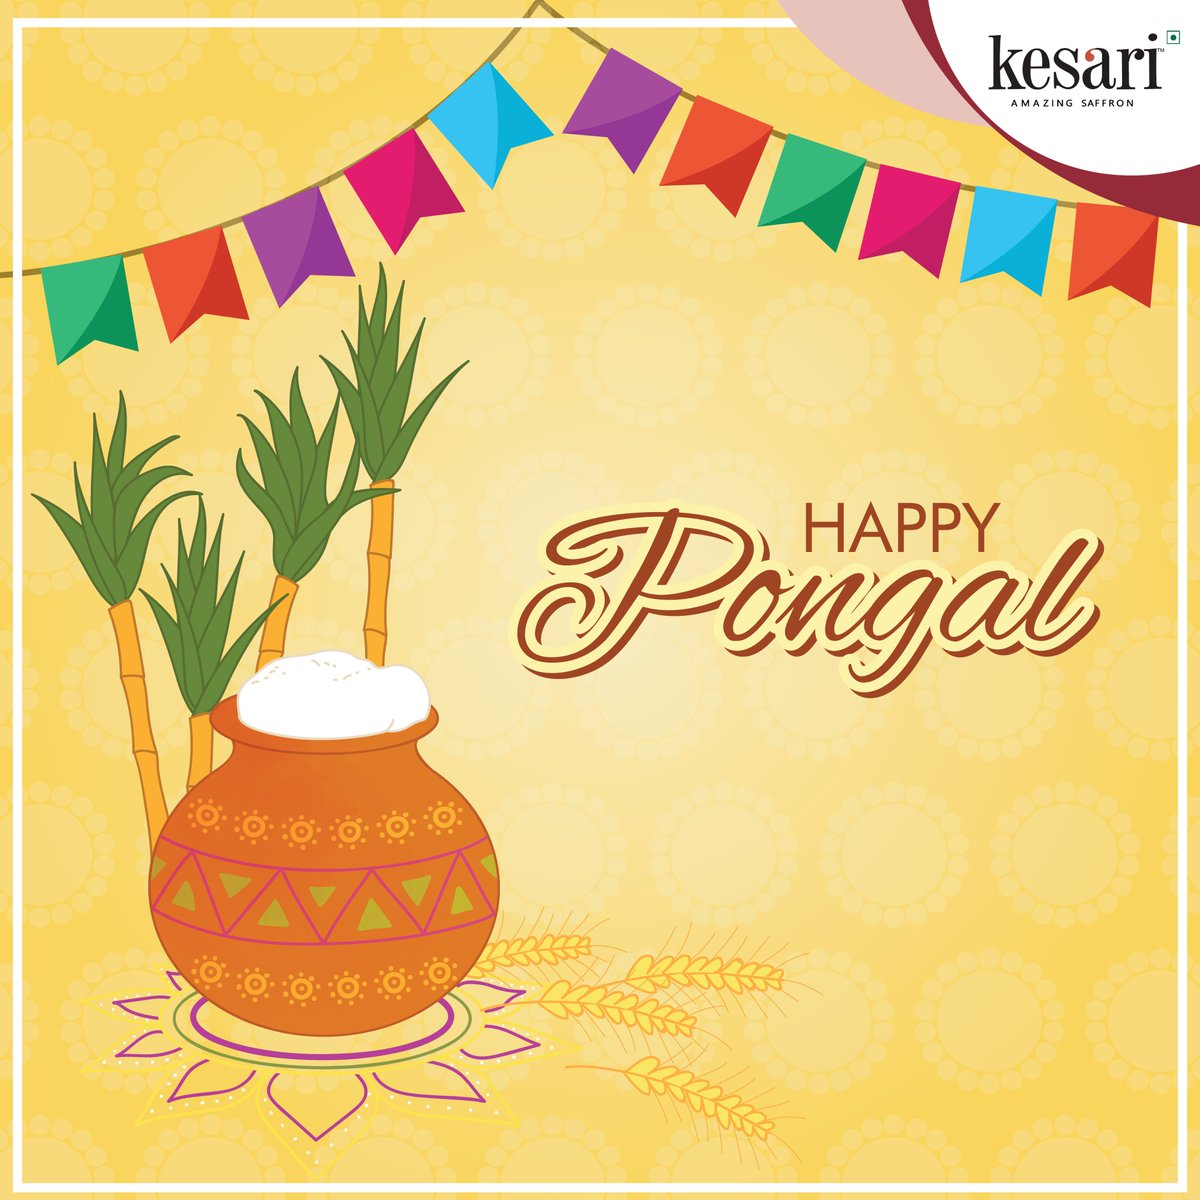 #HappyPongal (uzhavar thirunaal) to all. May this year bring you all the goodness in life. And a Big Shout out to all the #farmers for their hard work to provide the #food we #eat. Make this #Pongal even more special by just adding a pinch of #Kesarisaffron. #pongalopongal #spice